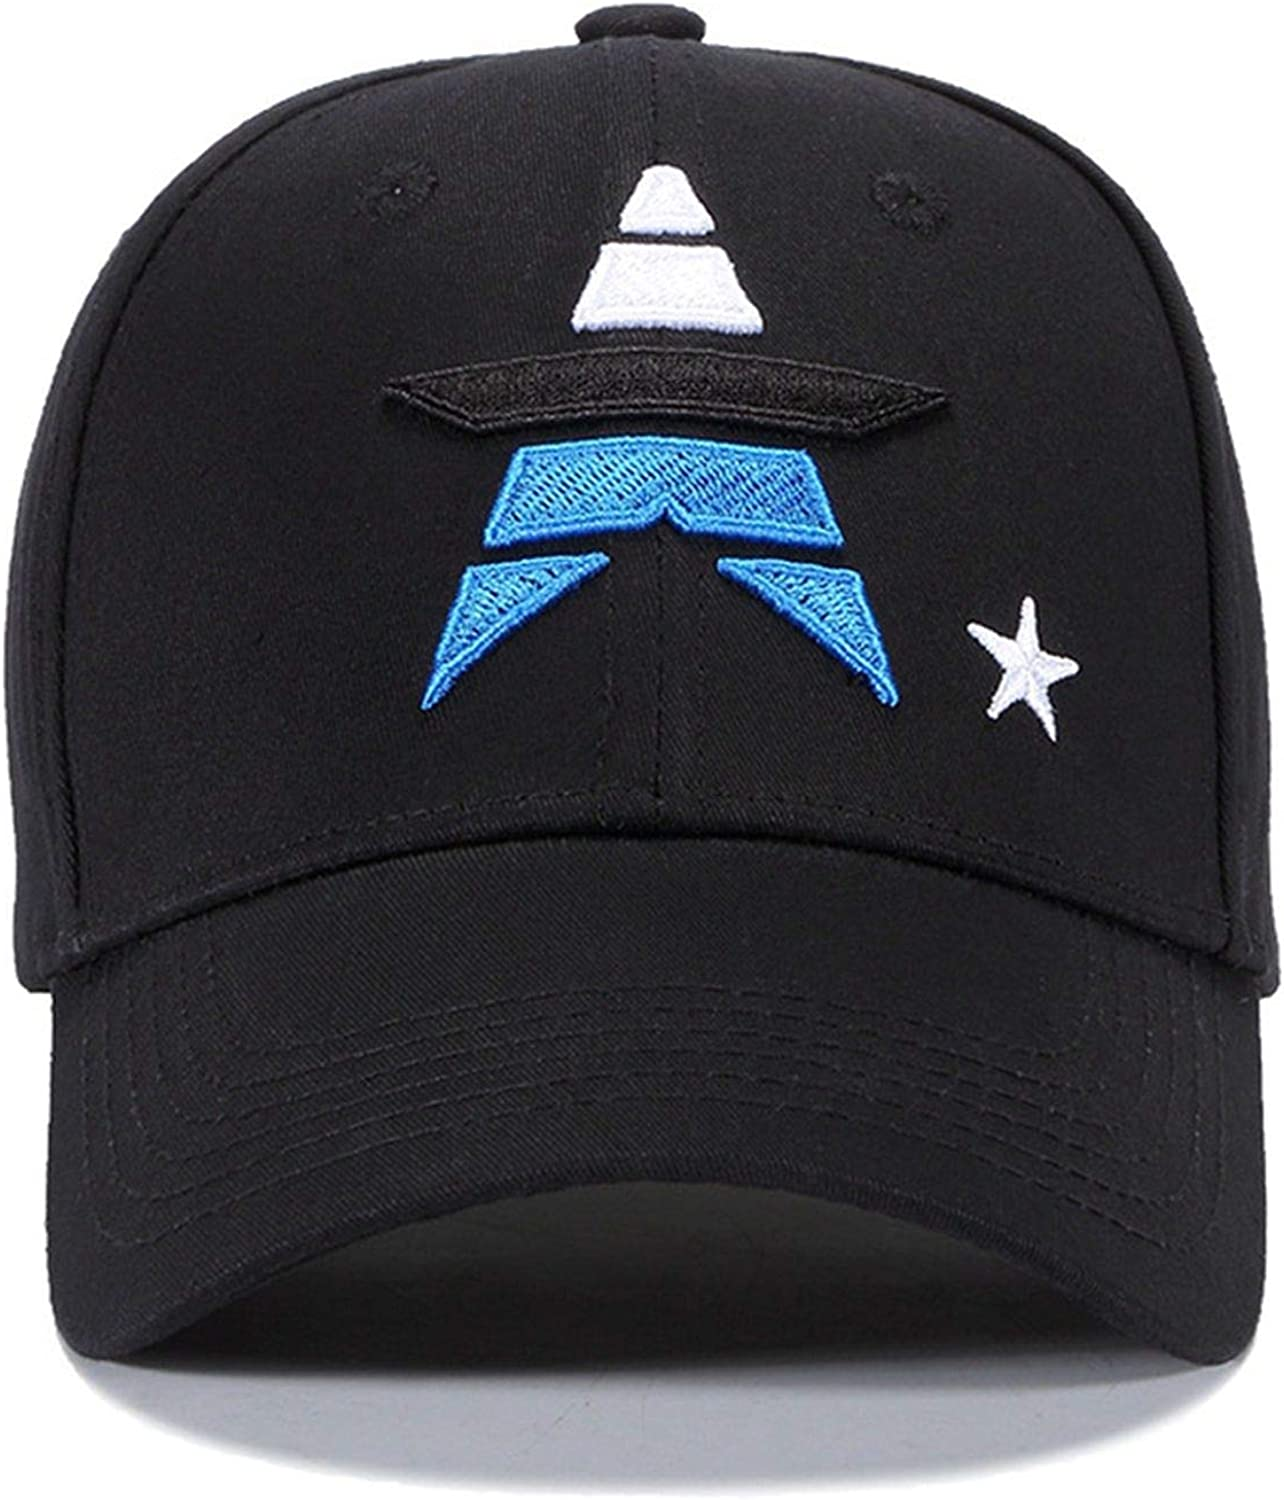 Eric Carl Fashion Embroidery Star Cotton Baseball Cap Men Women Hit Color Patchwork Star Hat Outdoor Casual Caps